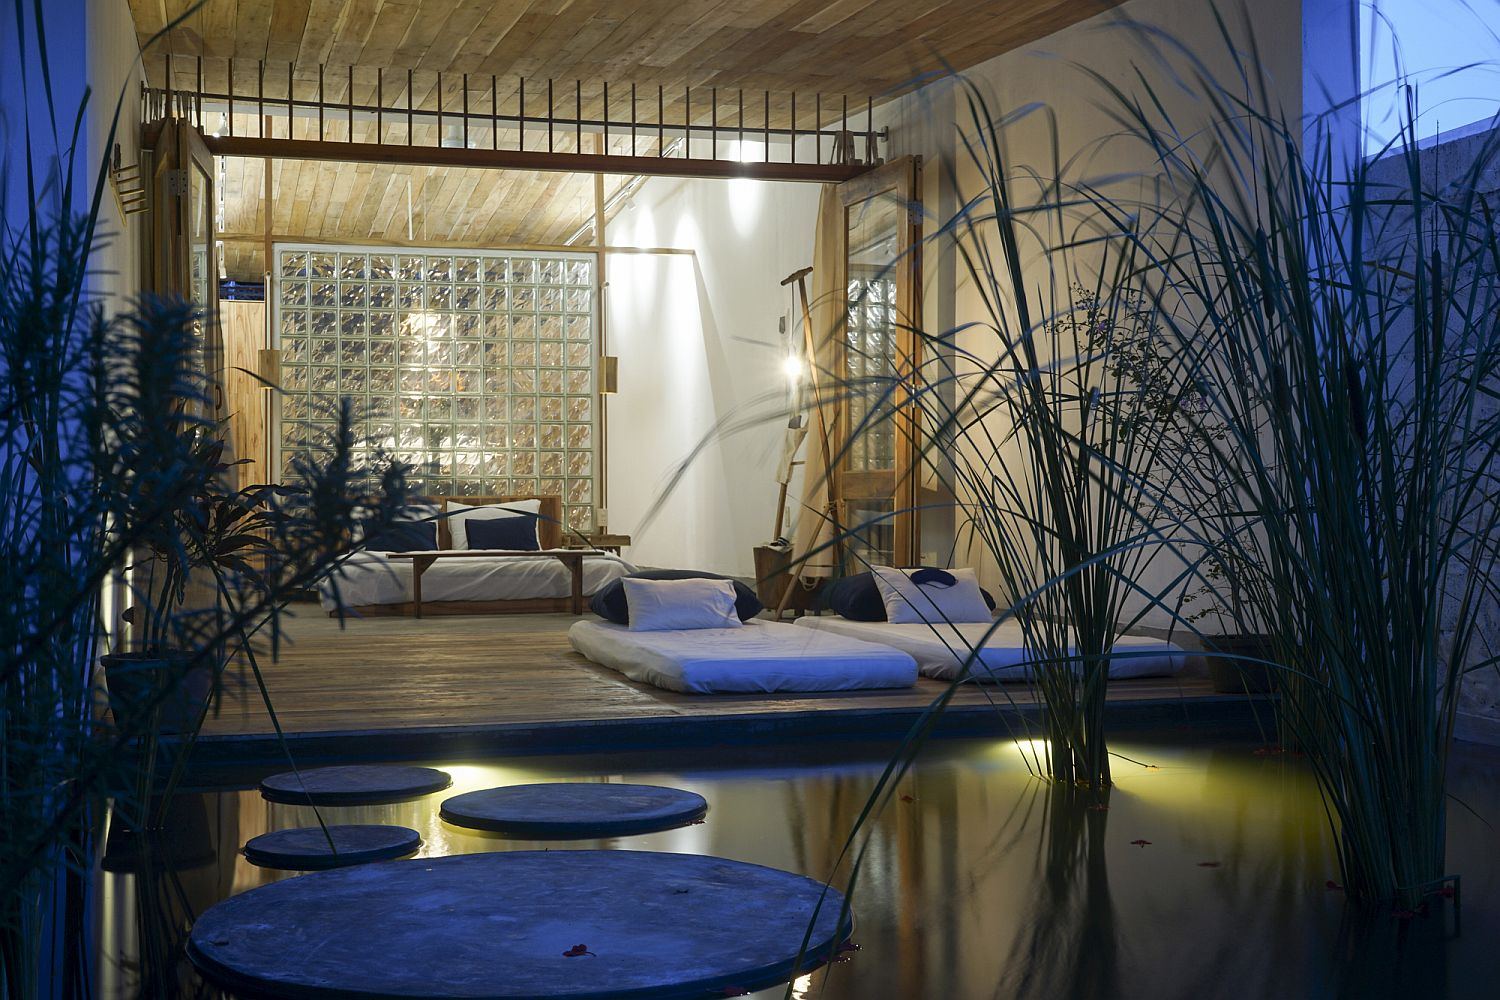 Natural pool and garden turn the lodge into a stunning refuge that takes you closer to nature